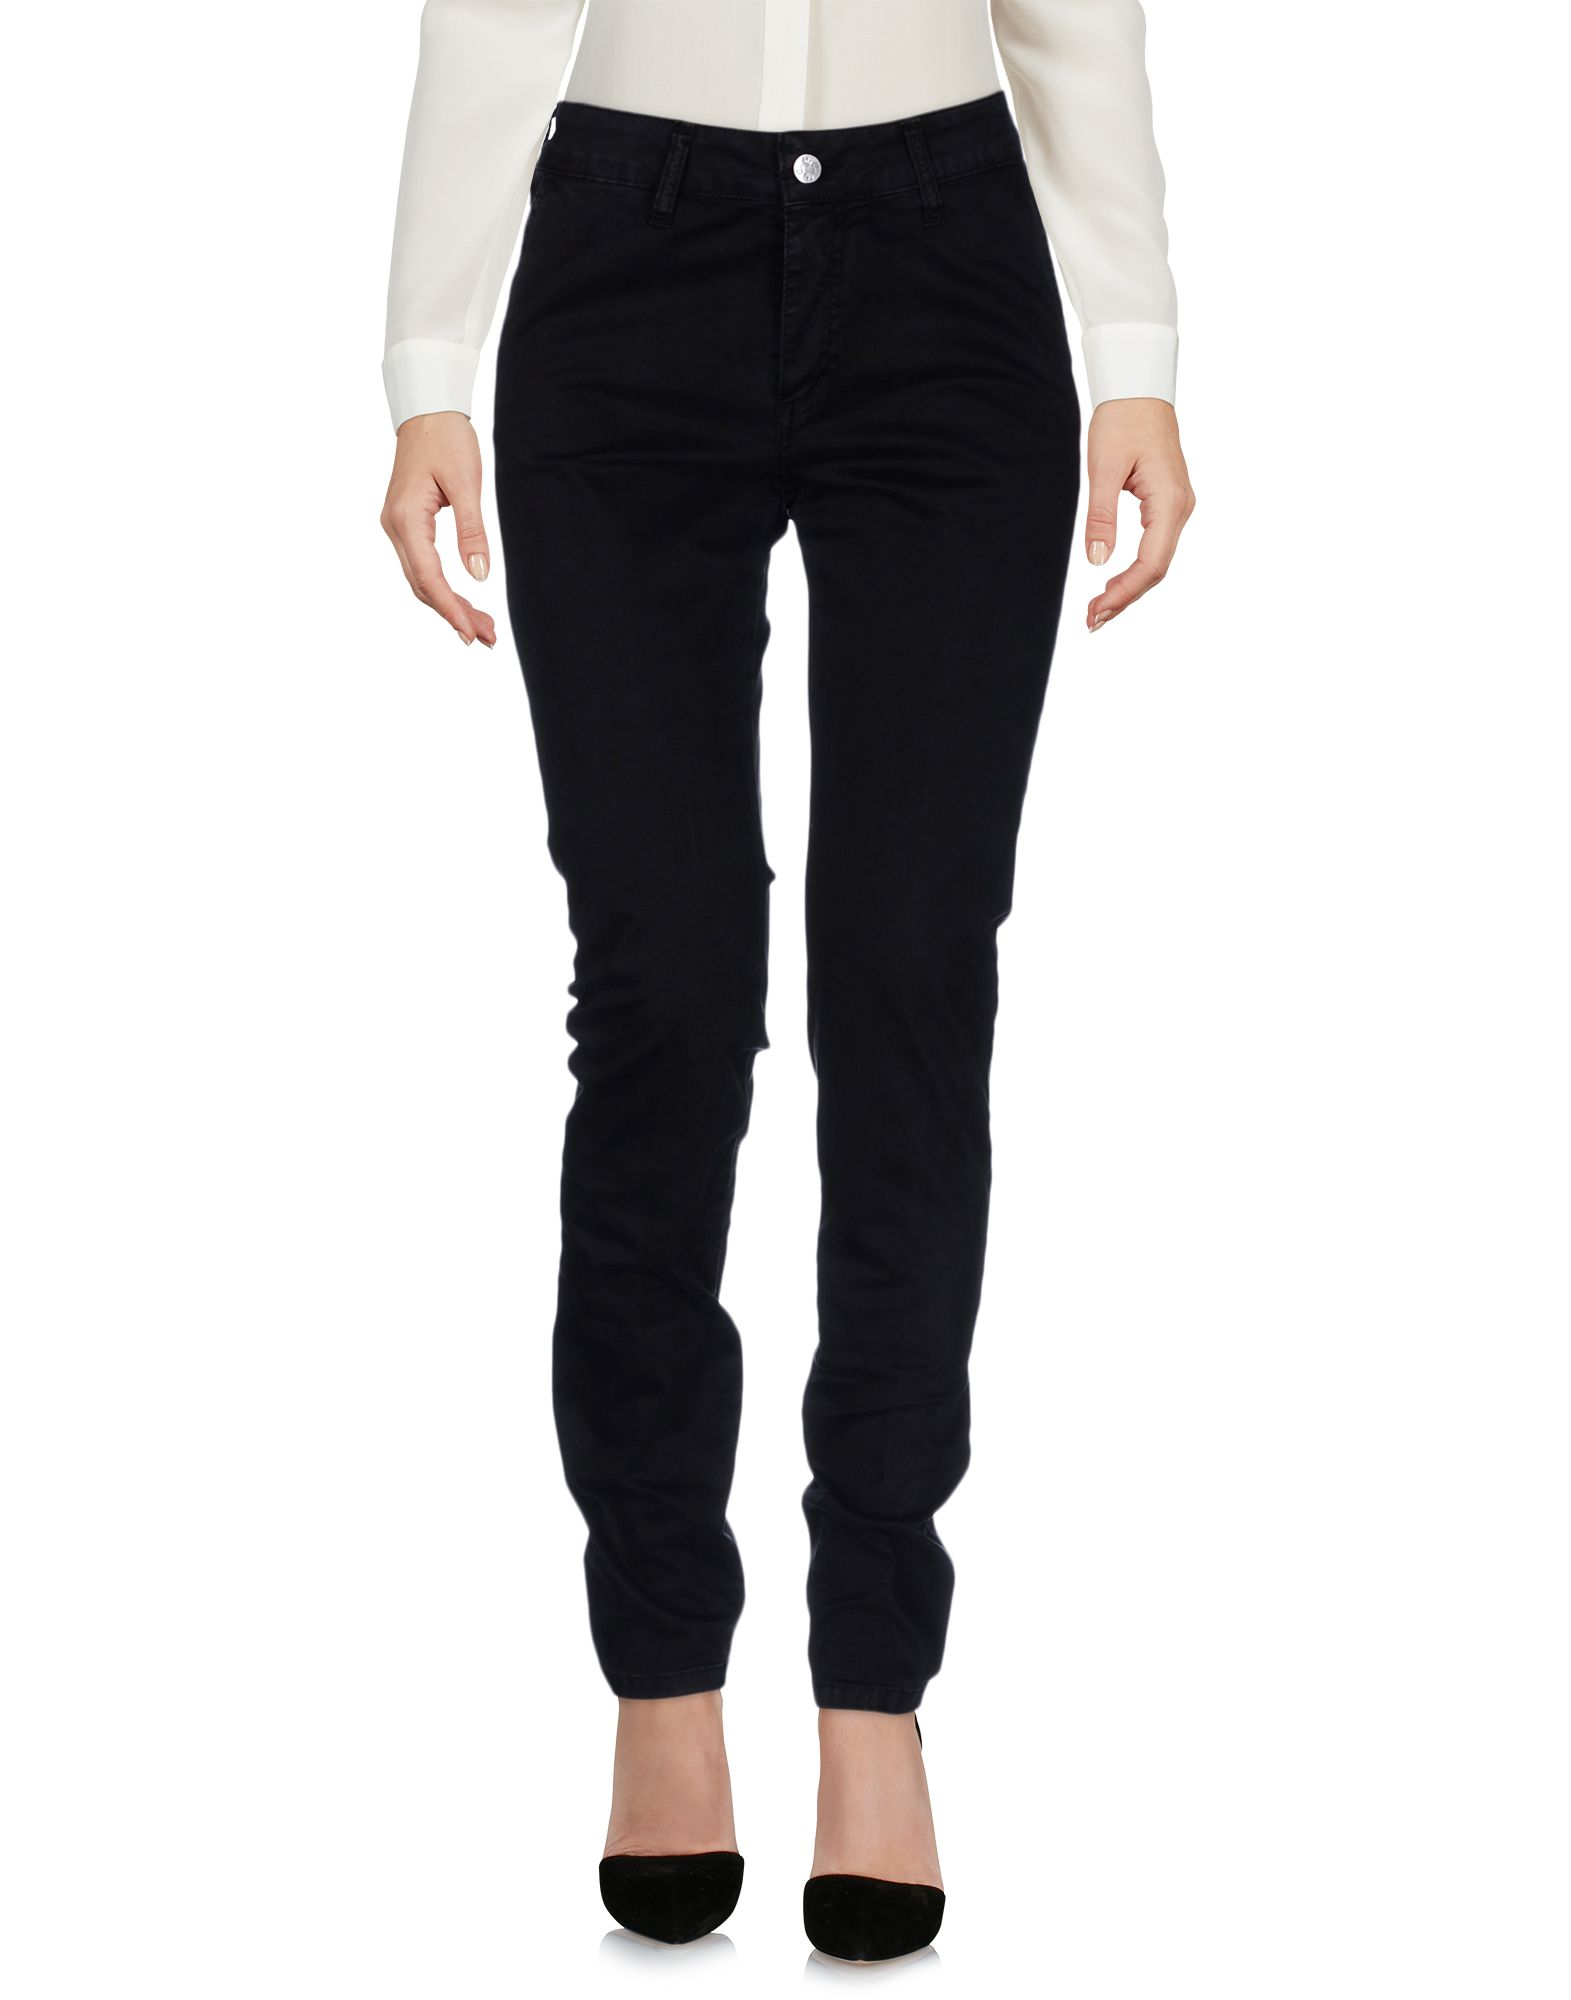 TROUSERS - Casual trousers Simoncini HTI3L